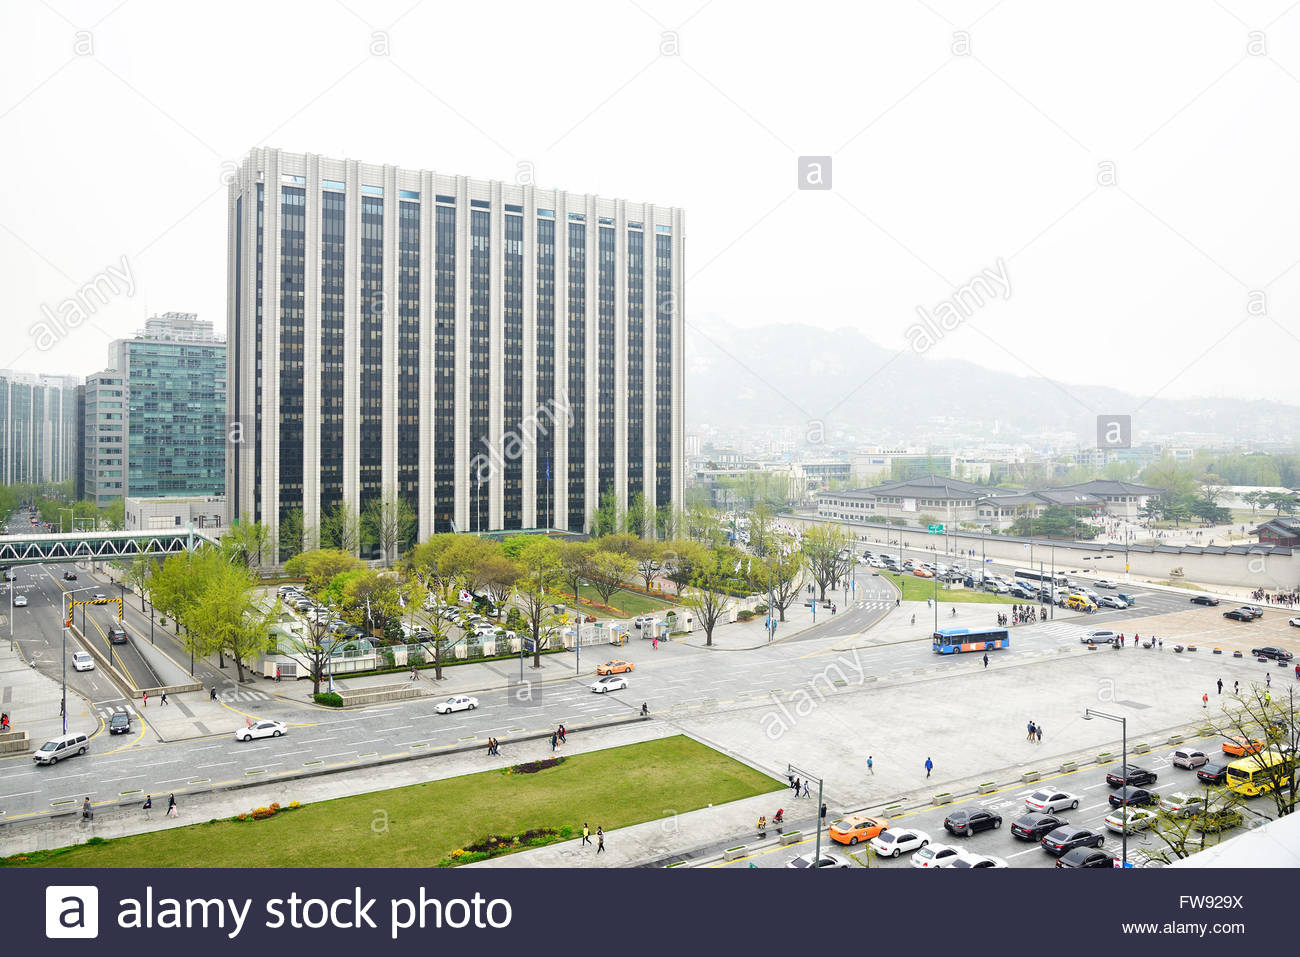 Ministry of the Interior, Seoul, South Korea - Stock Image